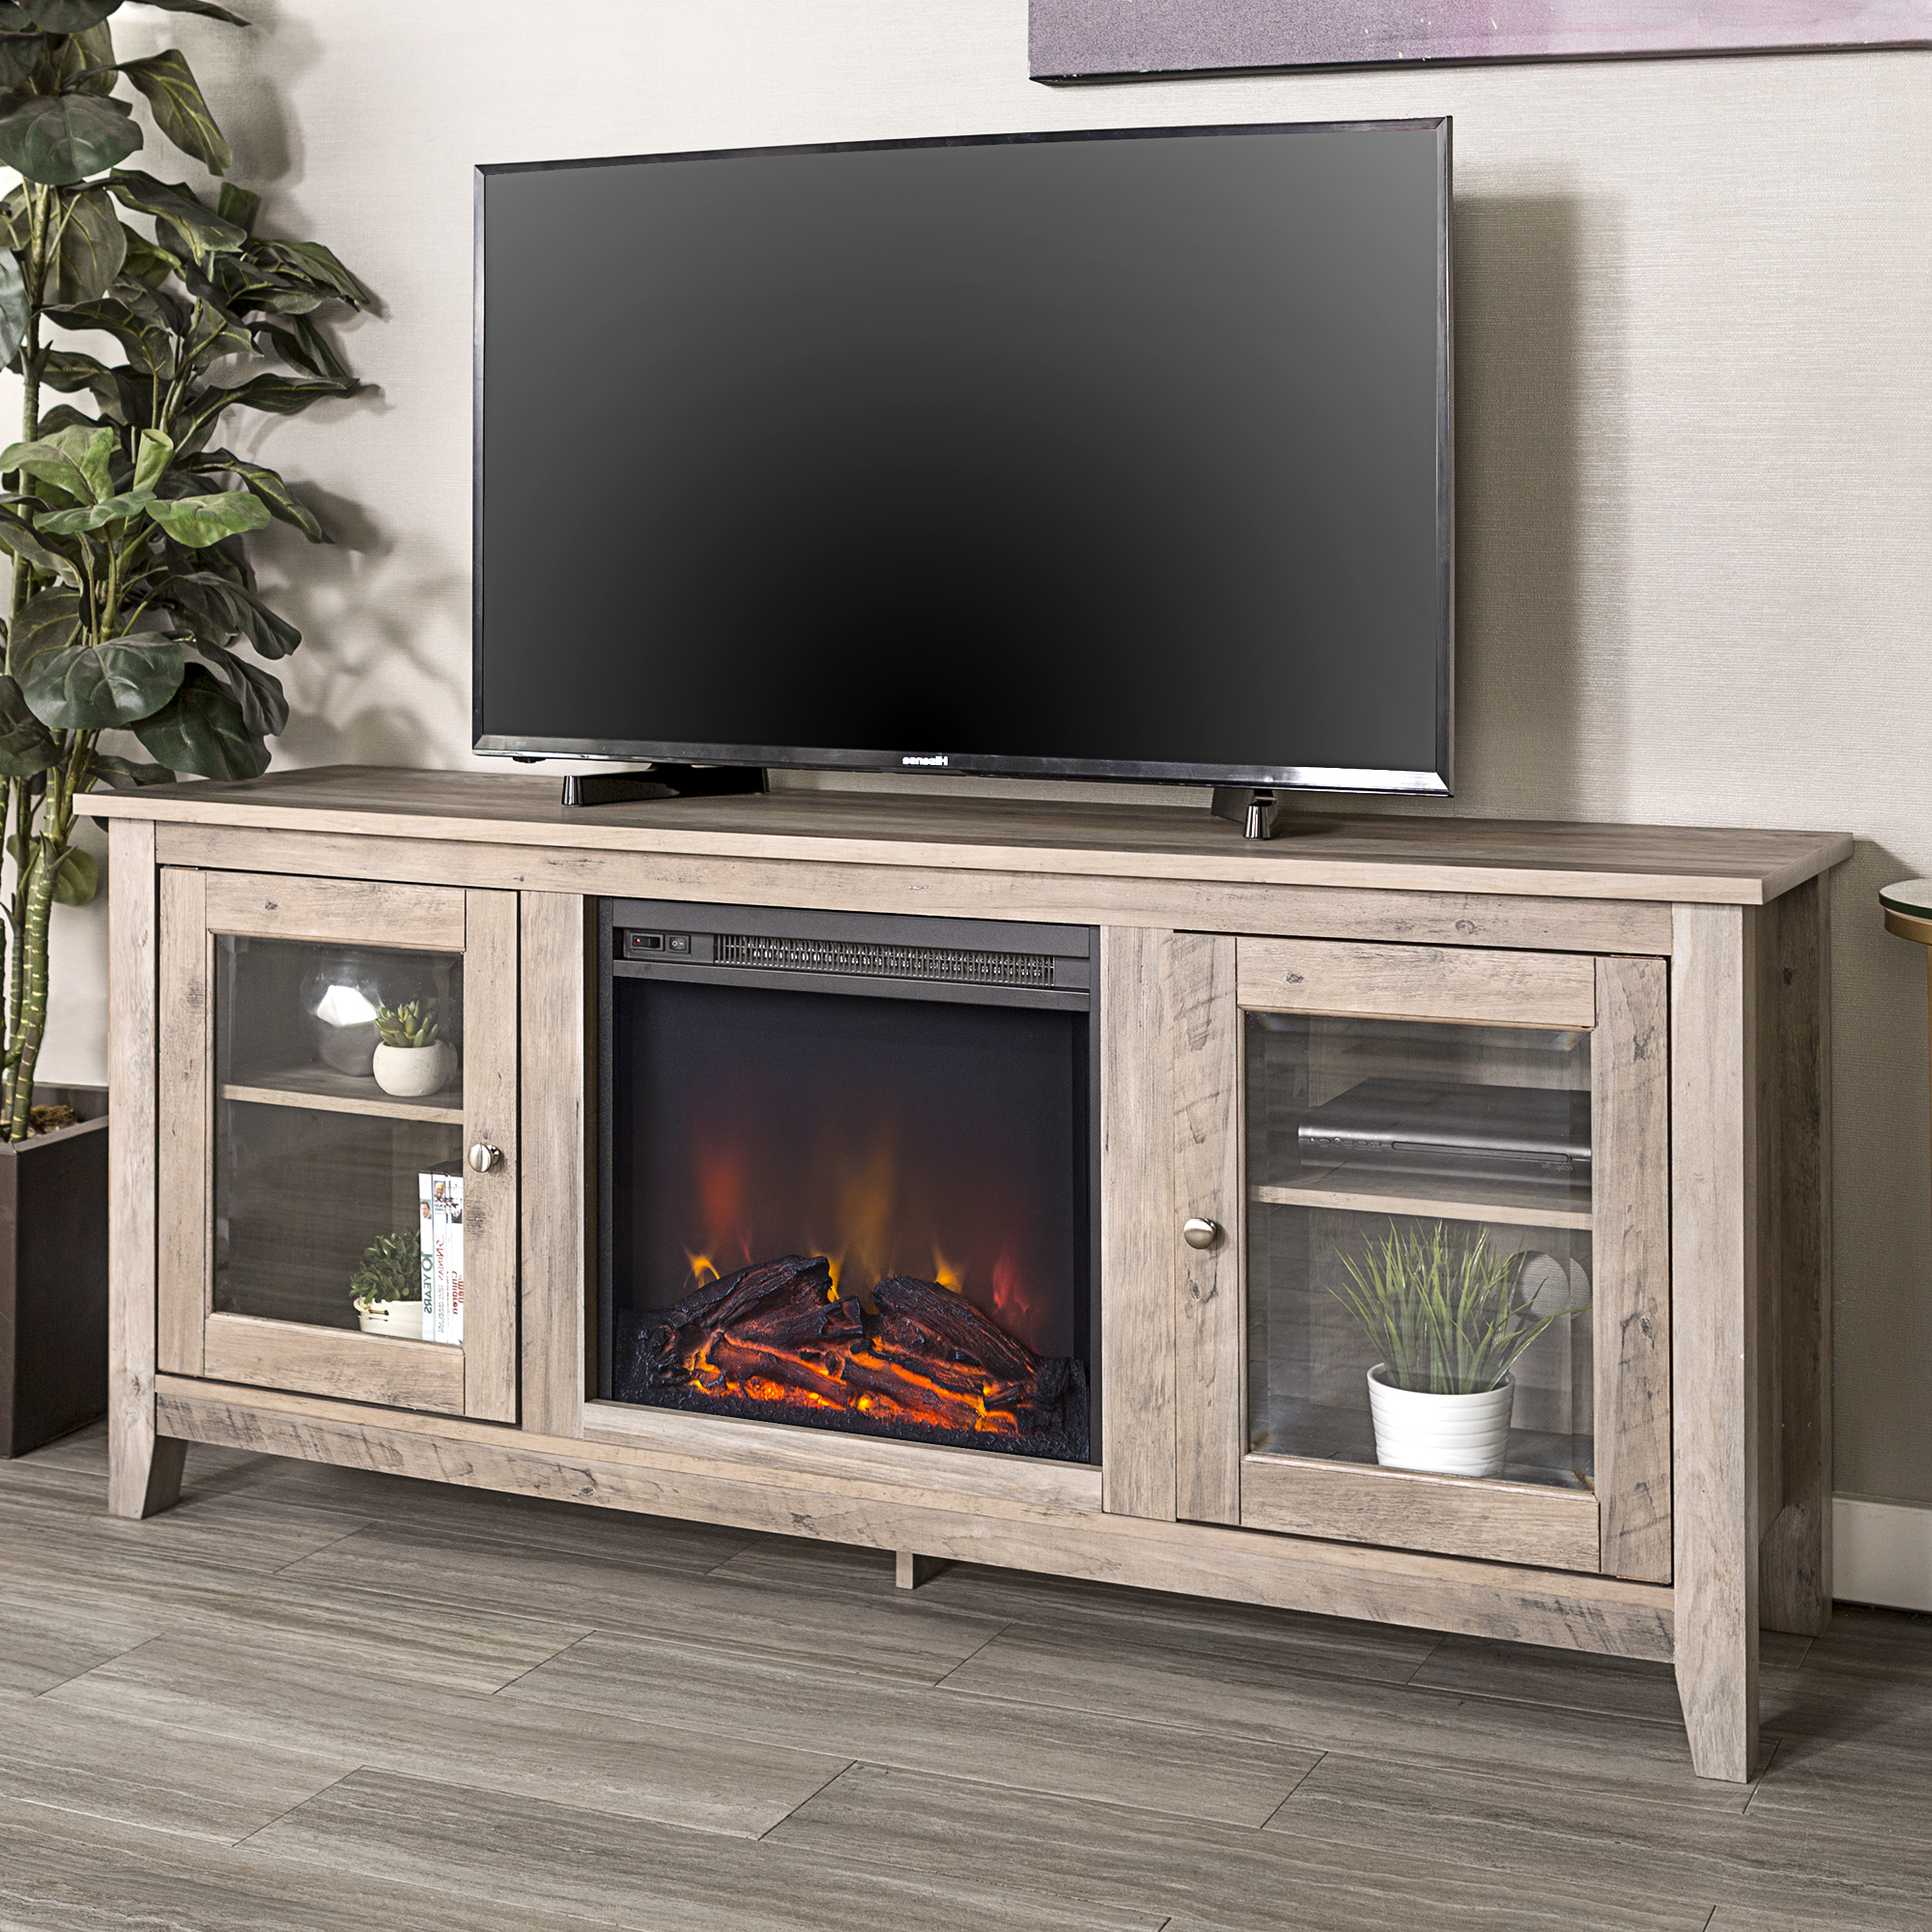 """Walkeredison Furniture 58"""" Wood Media Tv Stand Console Throughout Delphi Grey Tv Stands (View 8 of 20)"""